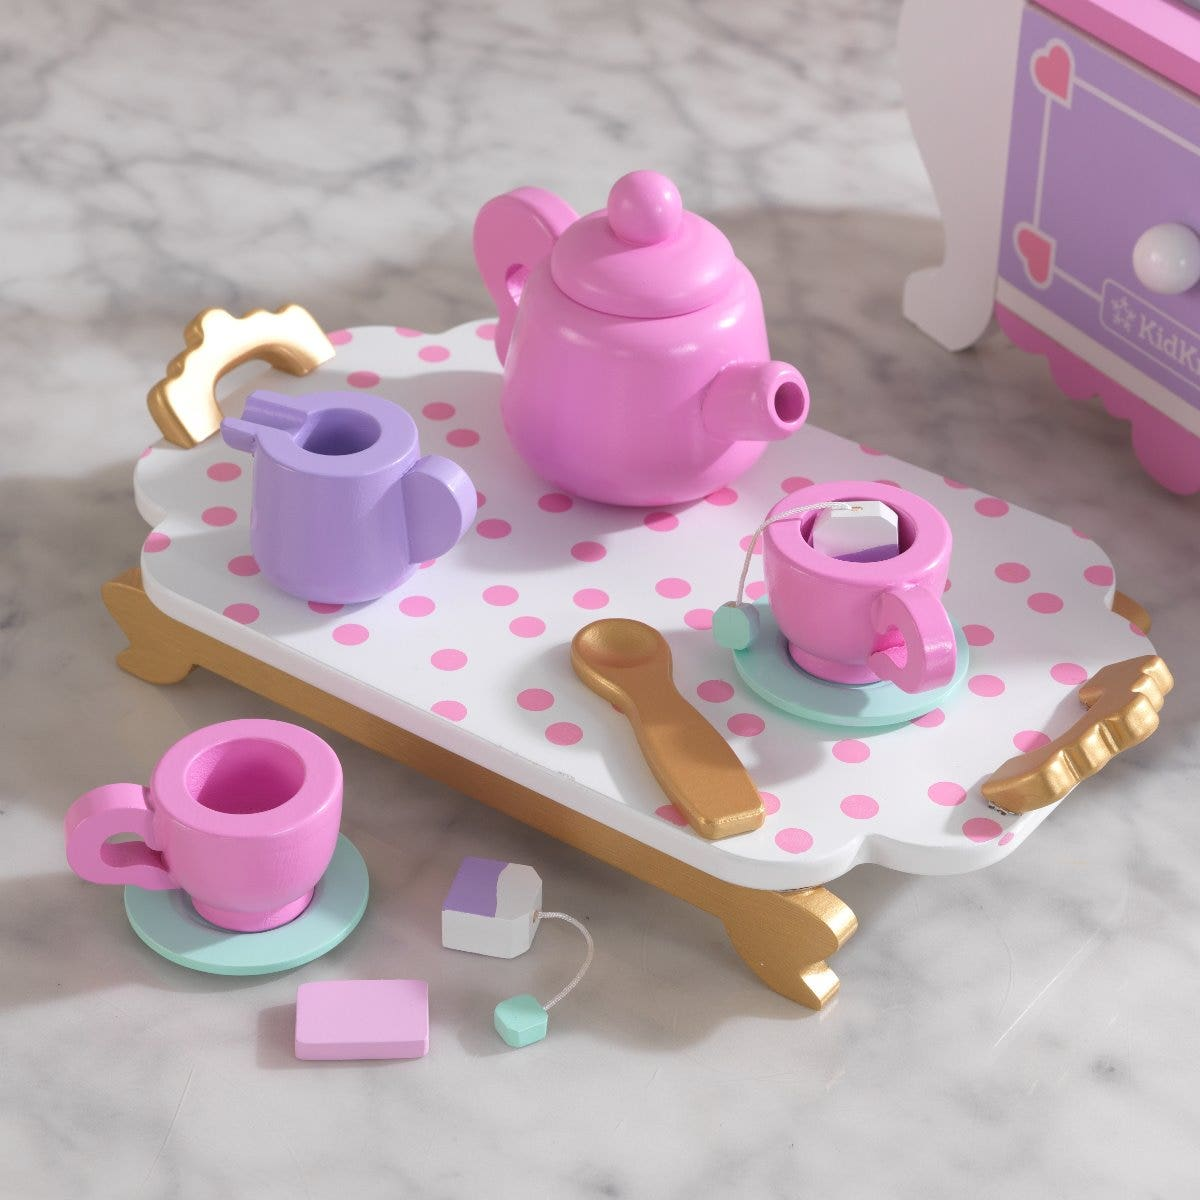 Includes cream, sugar, kettle, serving tray and role-play faucet and burner